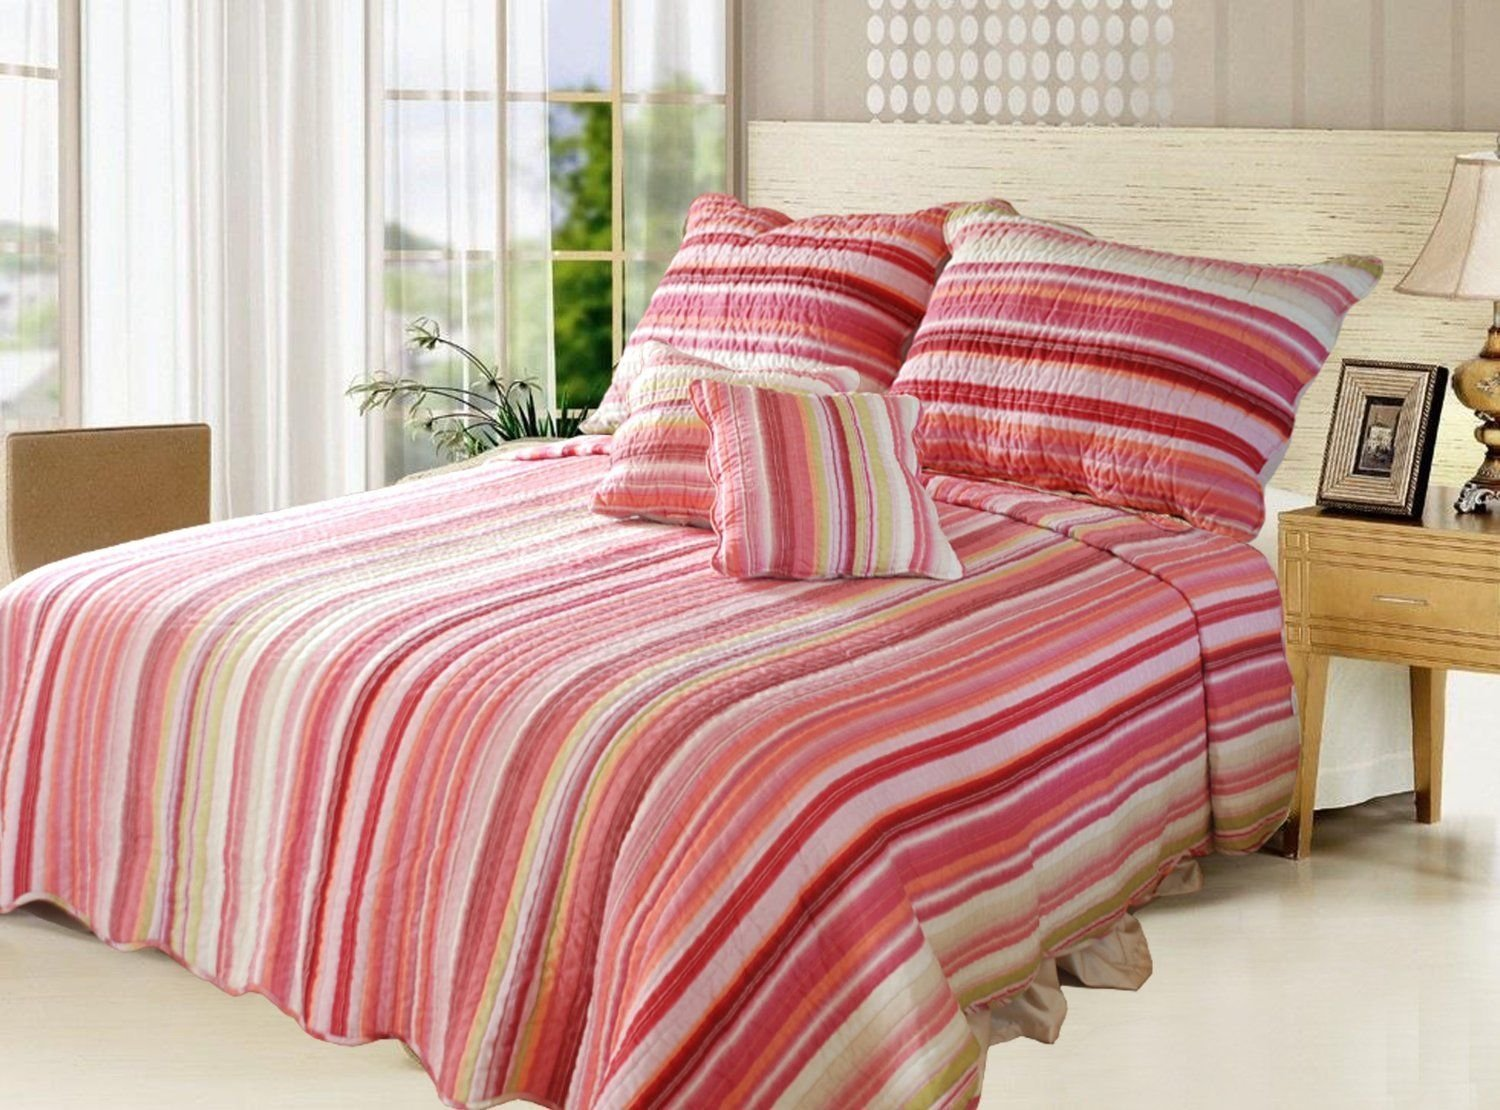 Get Quotations Dada Bedding Reversible Stunning Striped Multi Colored Quilt Bedspread Set Red Pink Stripes